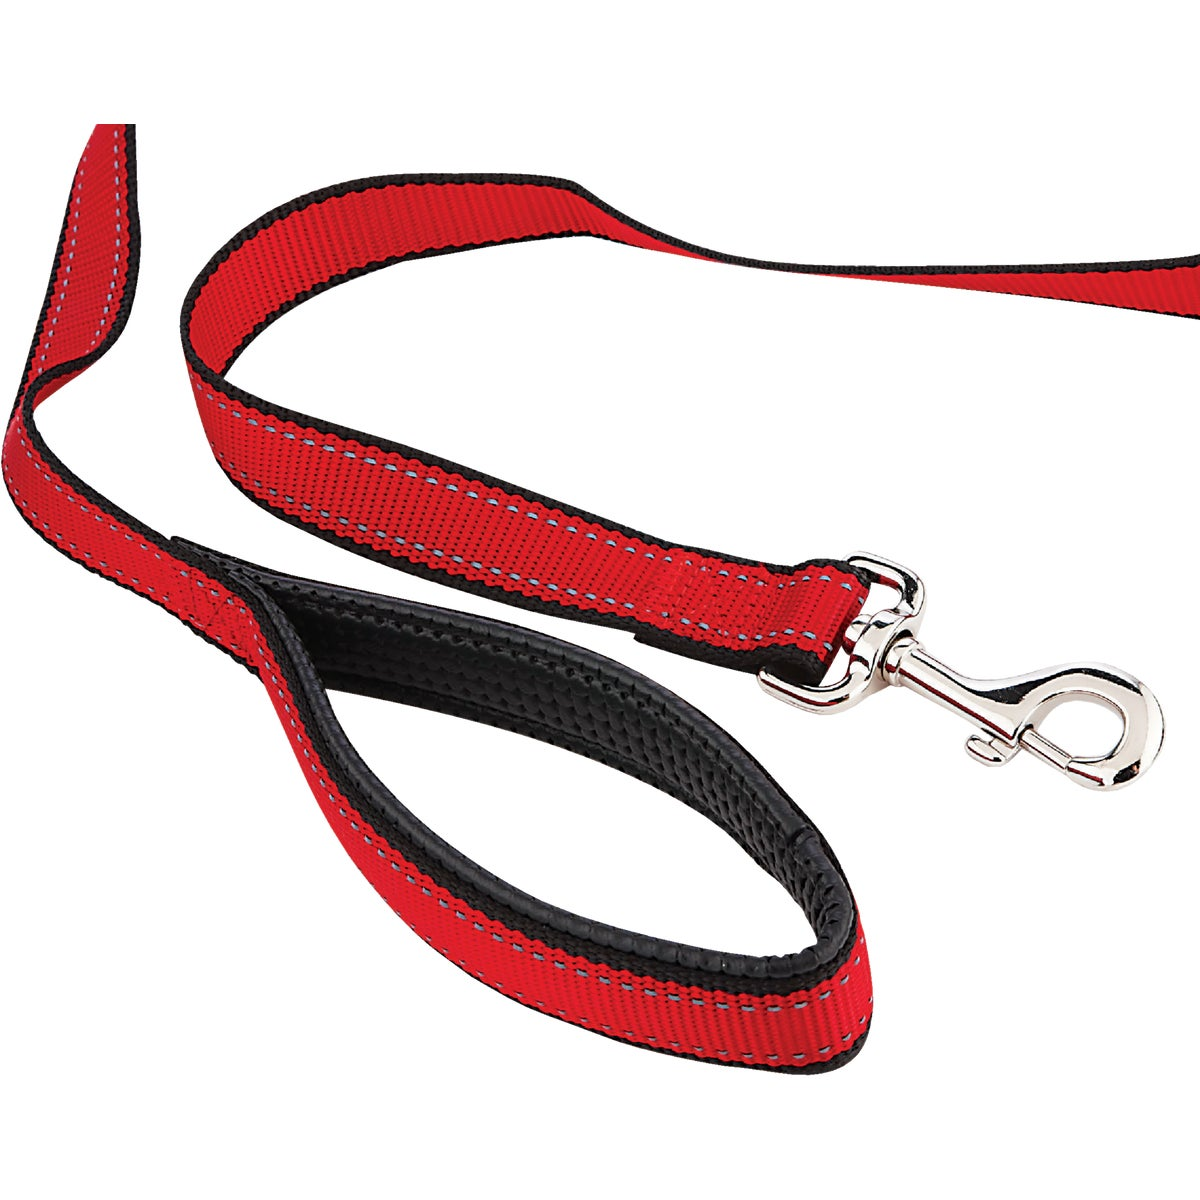 6' HI-VIS DOG LEASH